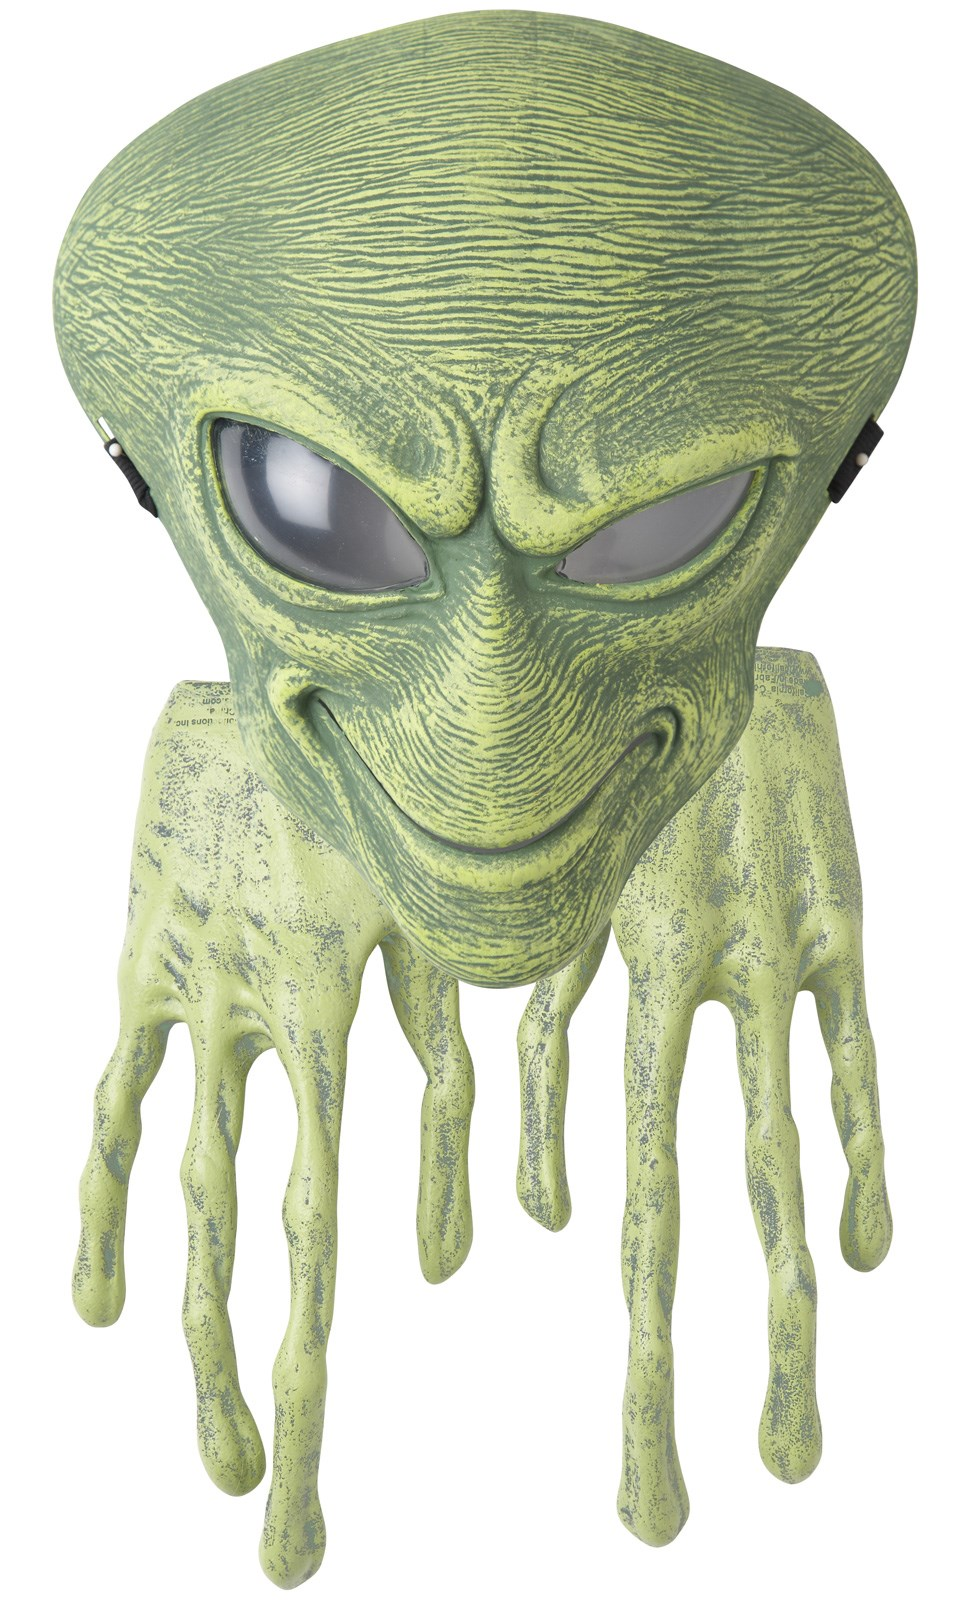 Image of Alien Mask And Glove Set